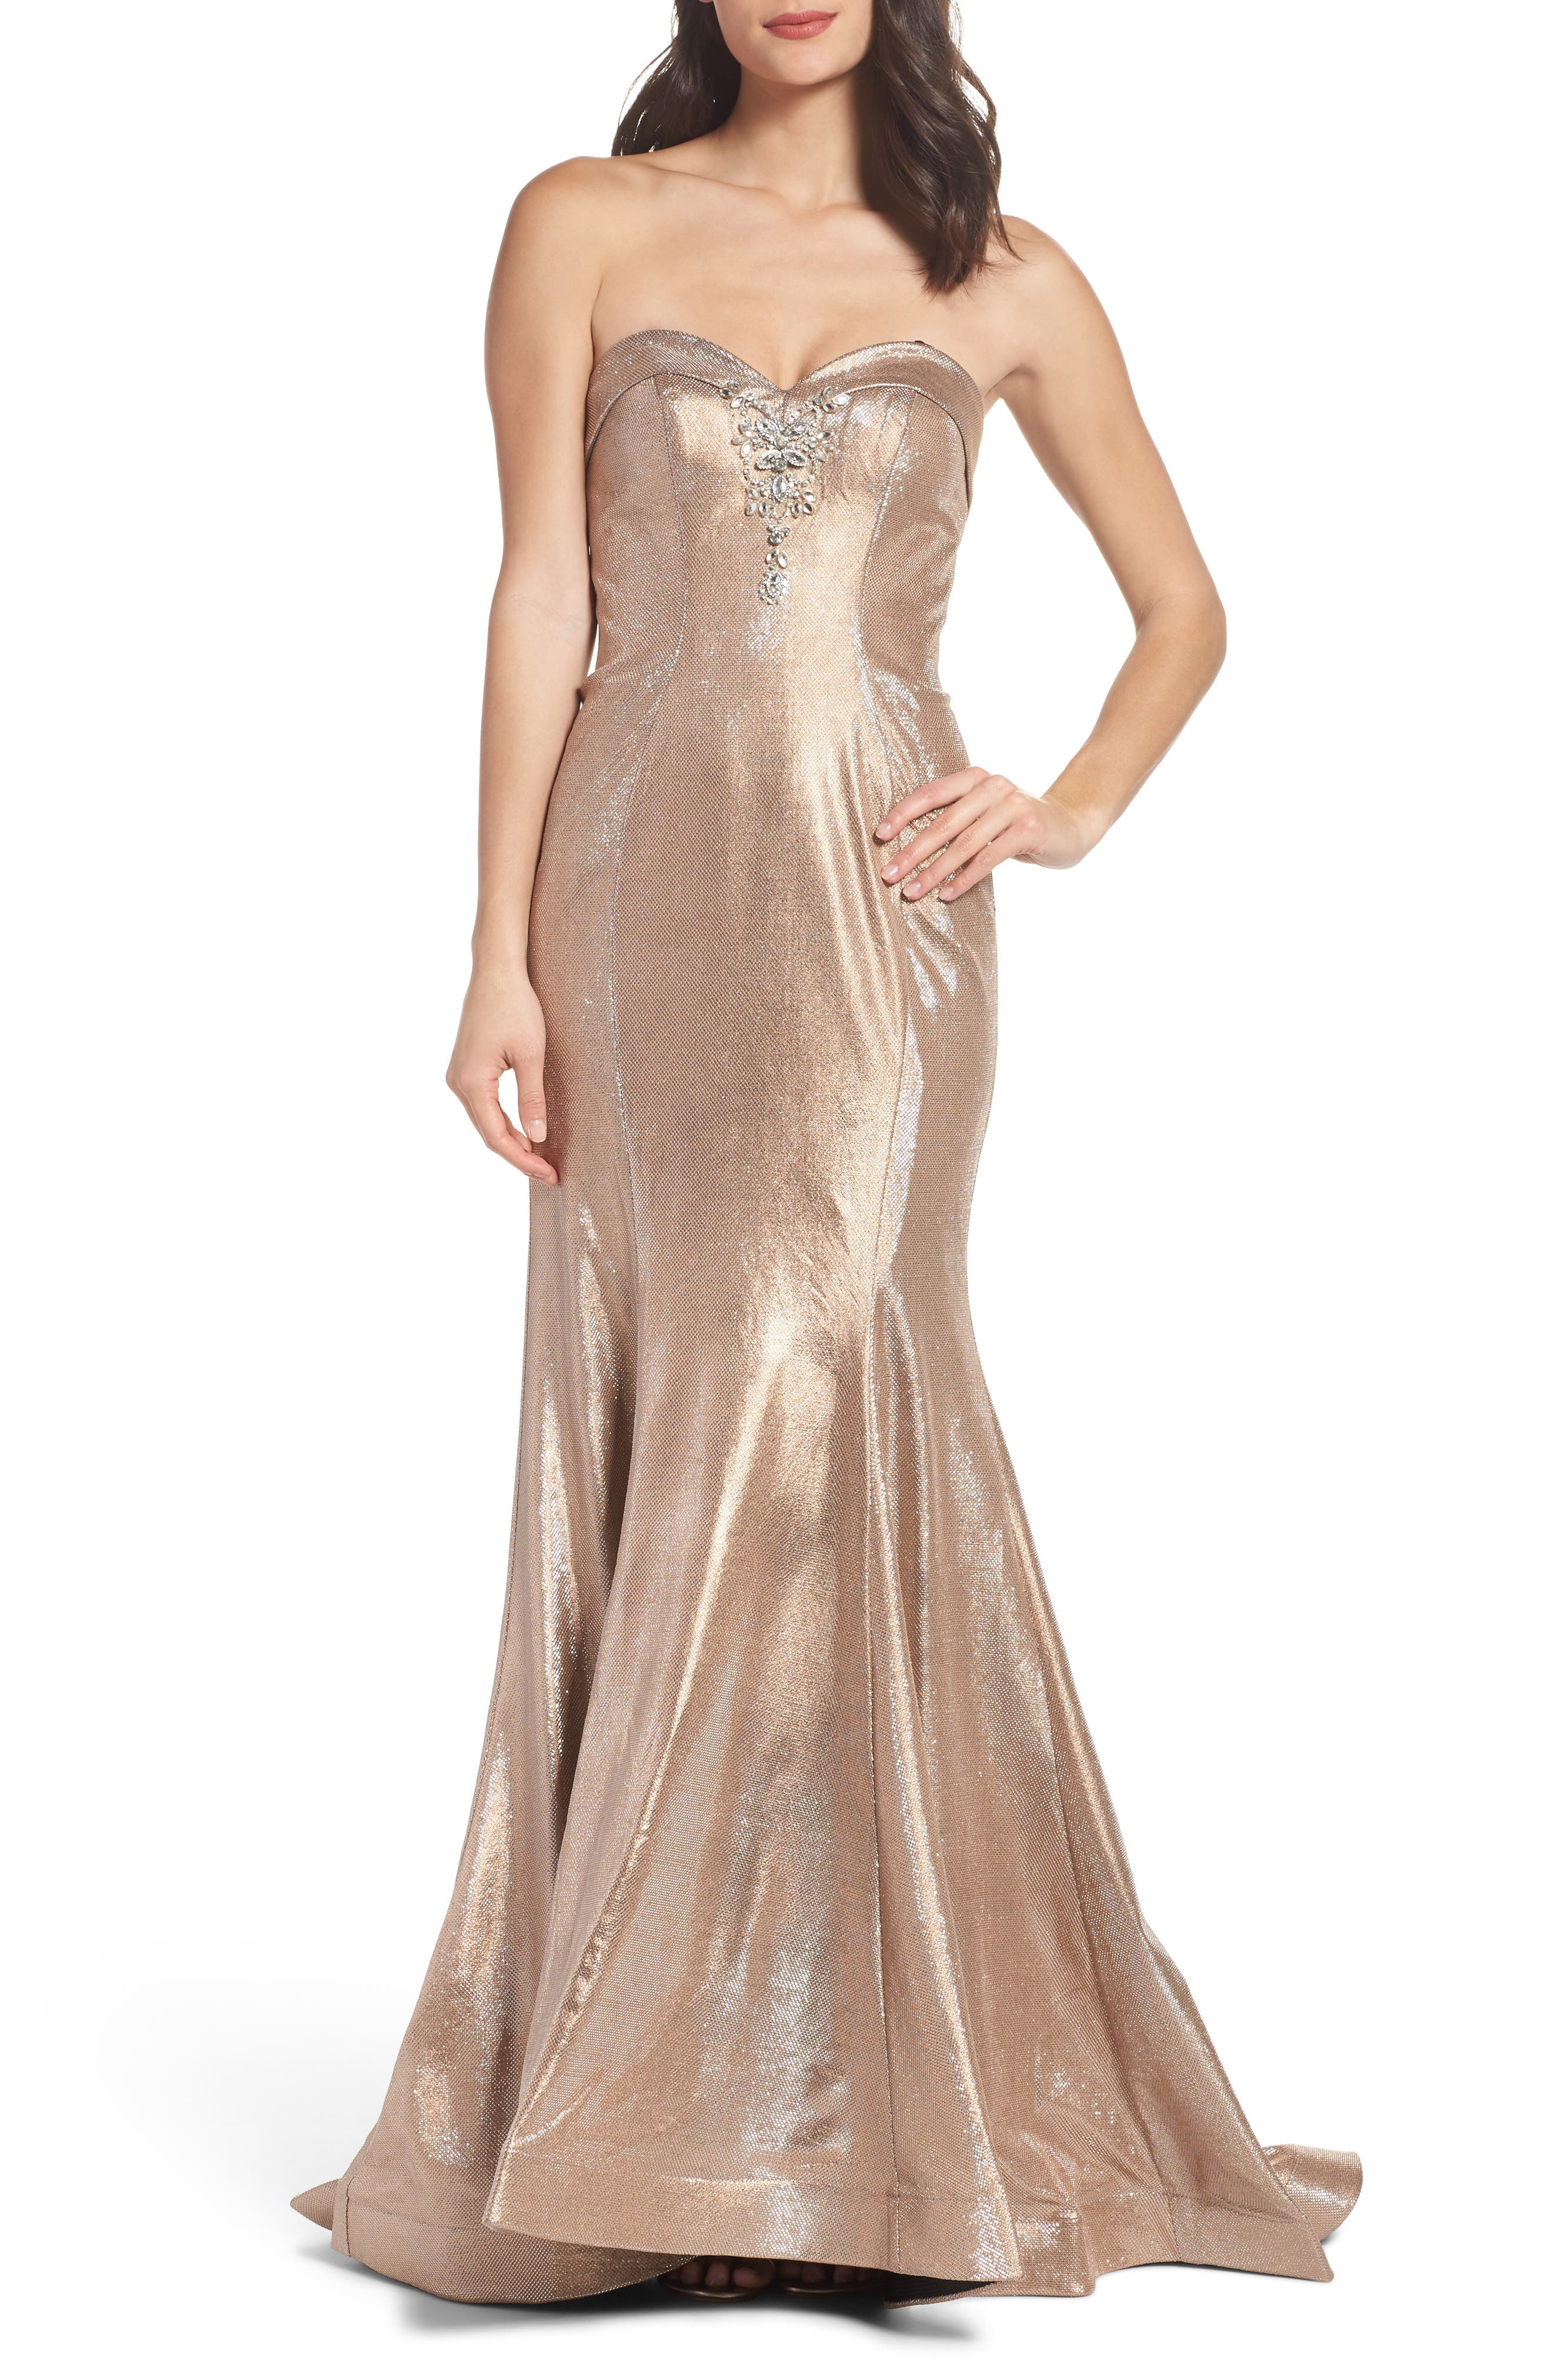 Metallic Mermaid Gown,                             Main thumbnail 1, color,                             Nude/Silver